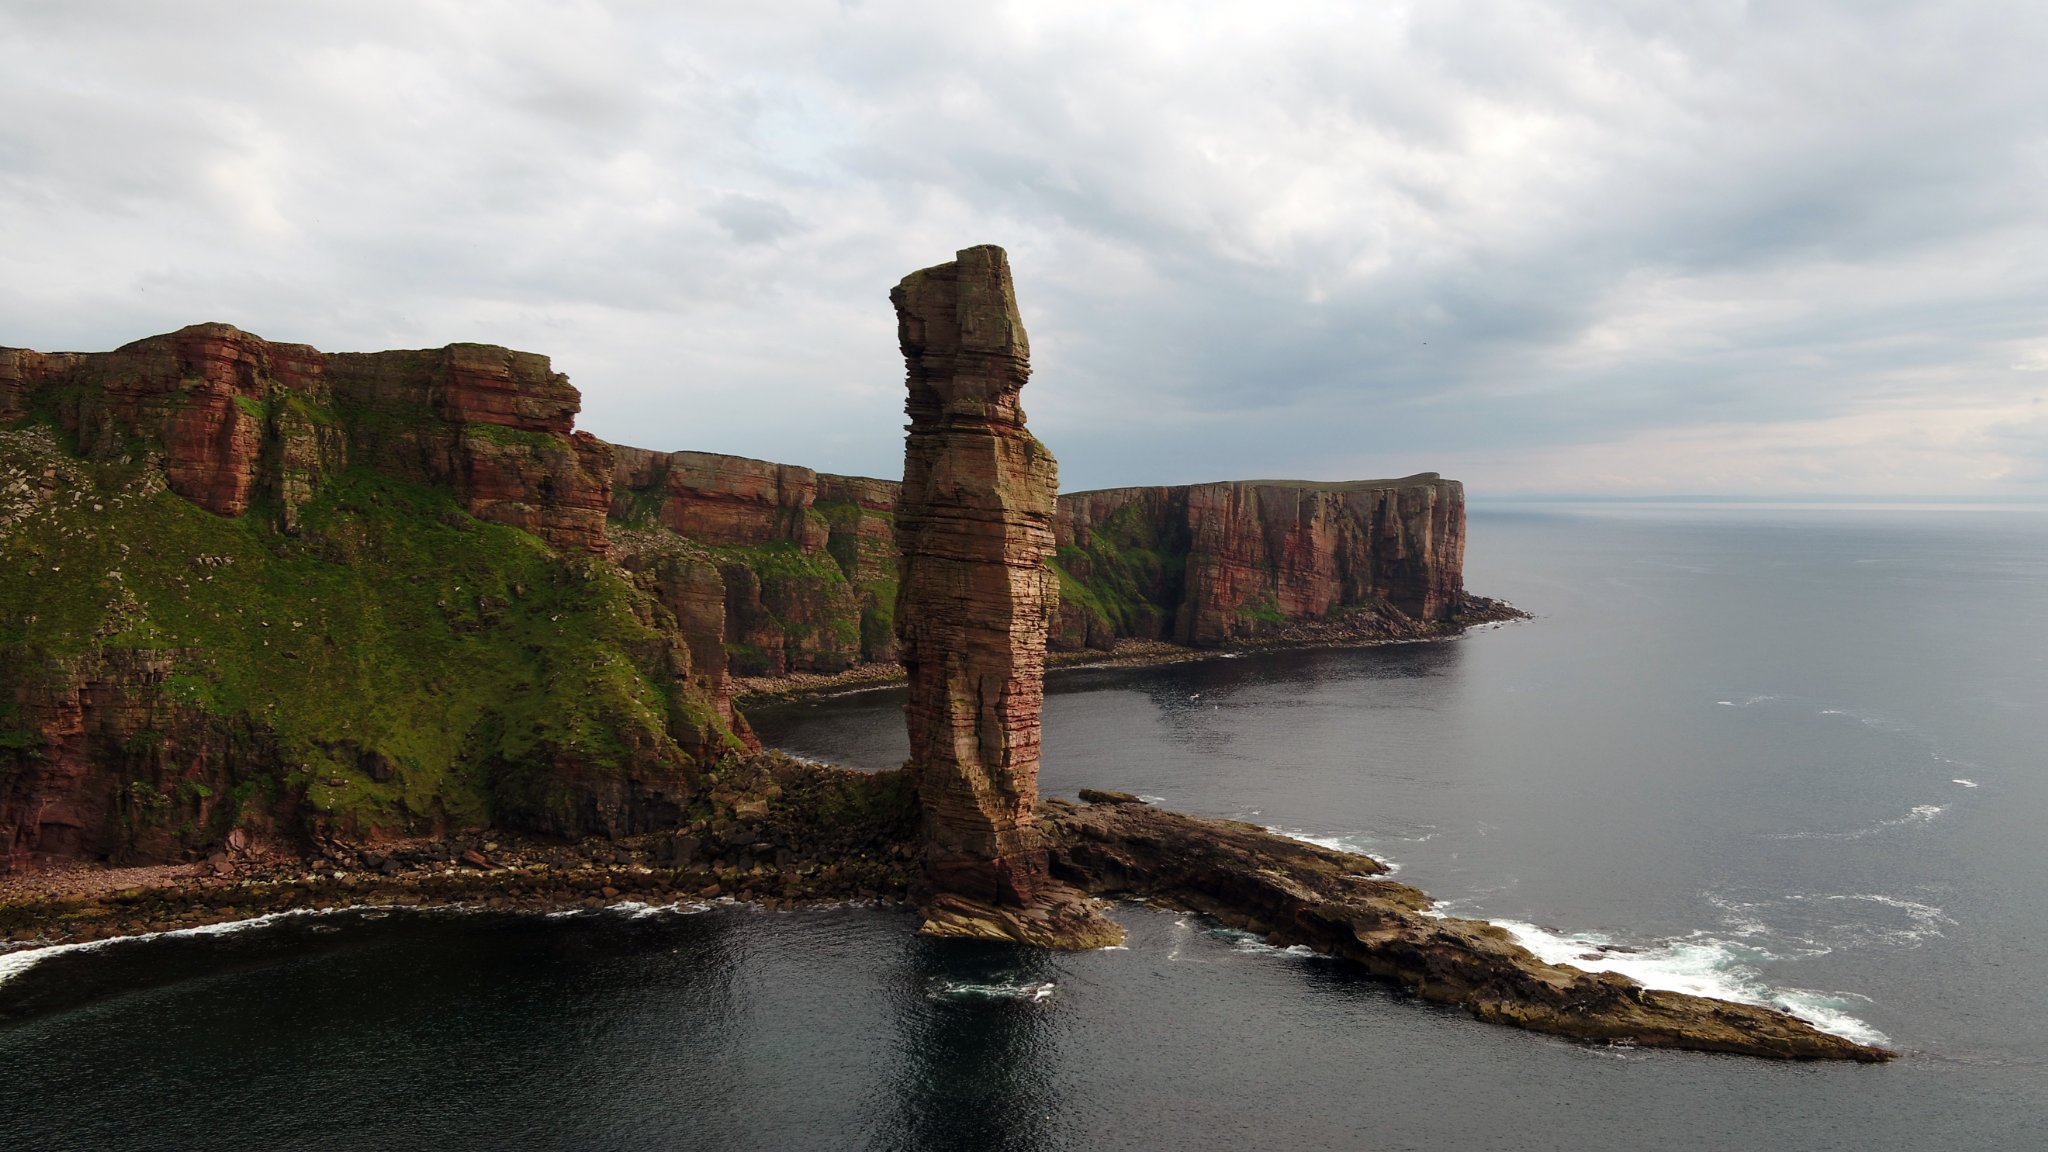 Old Man of Hoy, Orkney - image by Nick McCaffrey